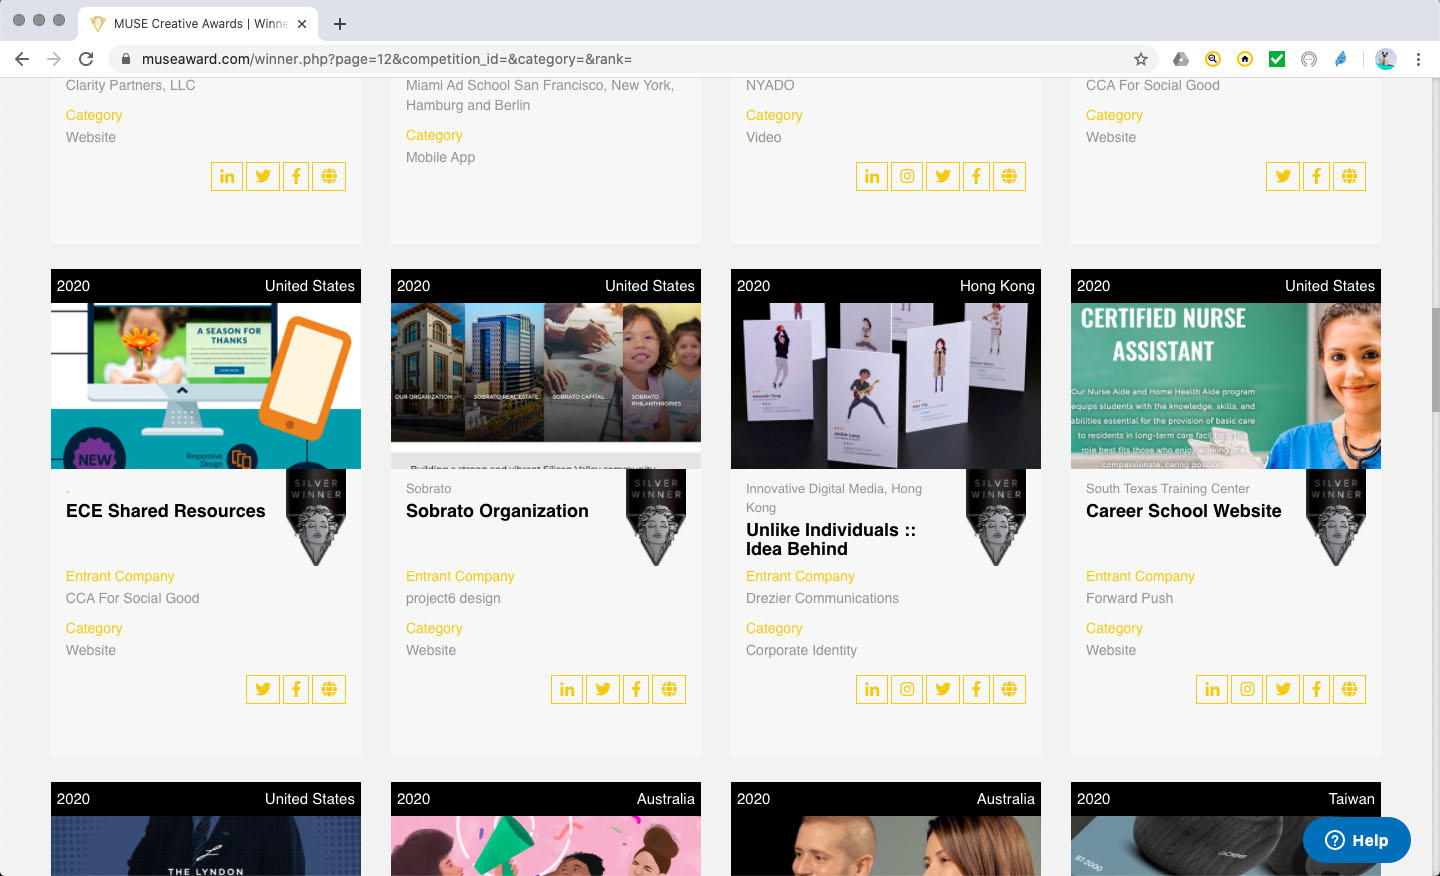 "[Winners' page seen our entry with others winners] Muse creative awards | Silver winner 2020 | Coroporate Identity category | Business Card sub-category | ""Unlike Individuals :: Idea Behind"" of Innovative Digital Media, Hong Kong [Design, Brand Revamp, dynamic branding]"